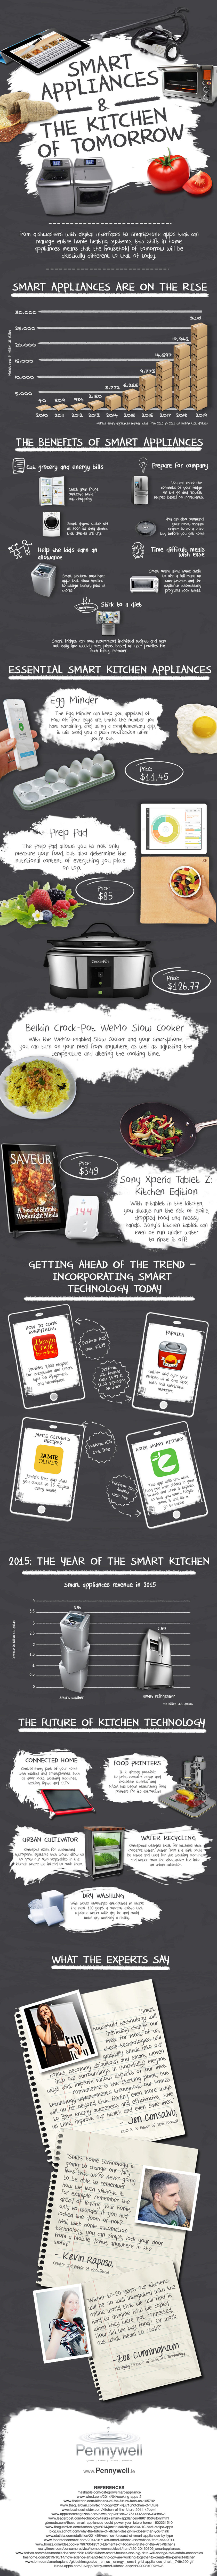 Smart Appliances and The Kitchen of Tomorrow - Technology Infographic